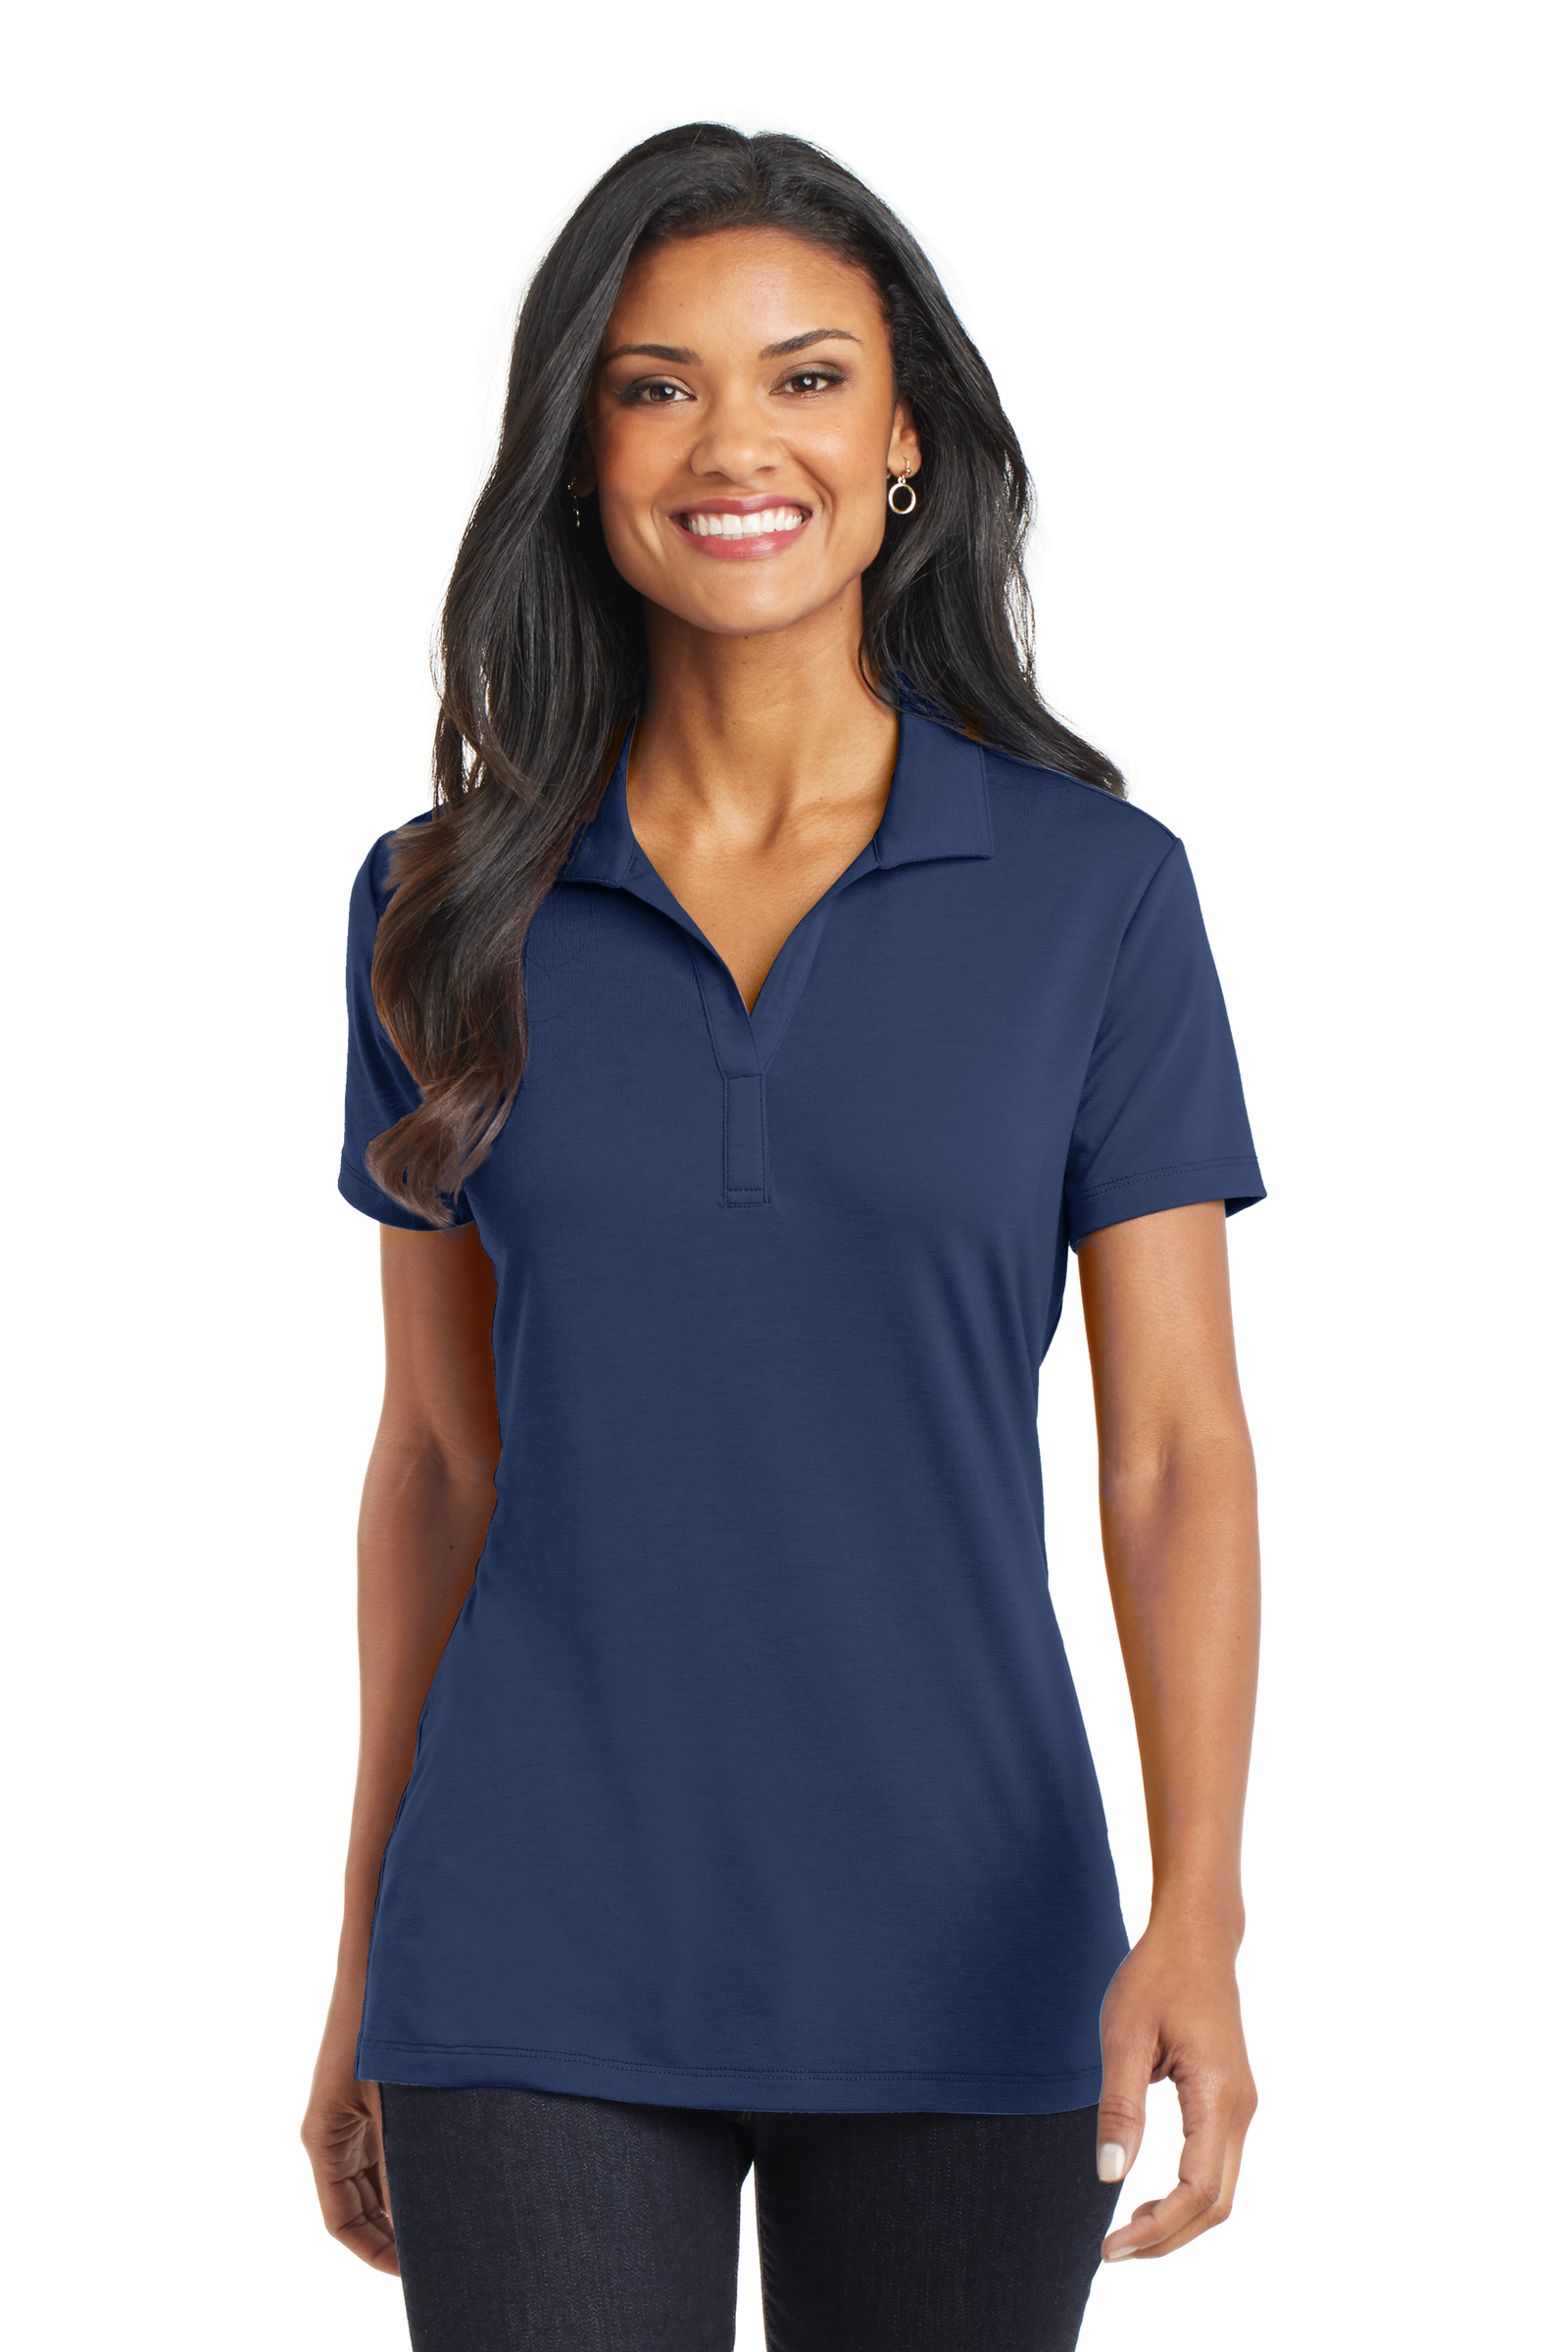 Port Authority Embroidered Women's Cotton Touch Performance Polo